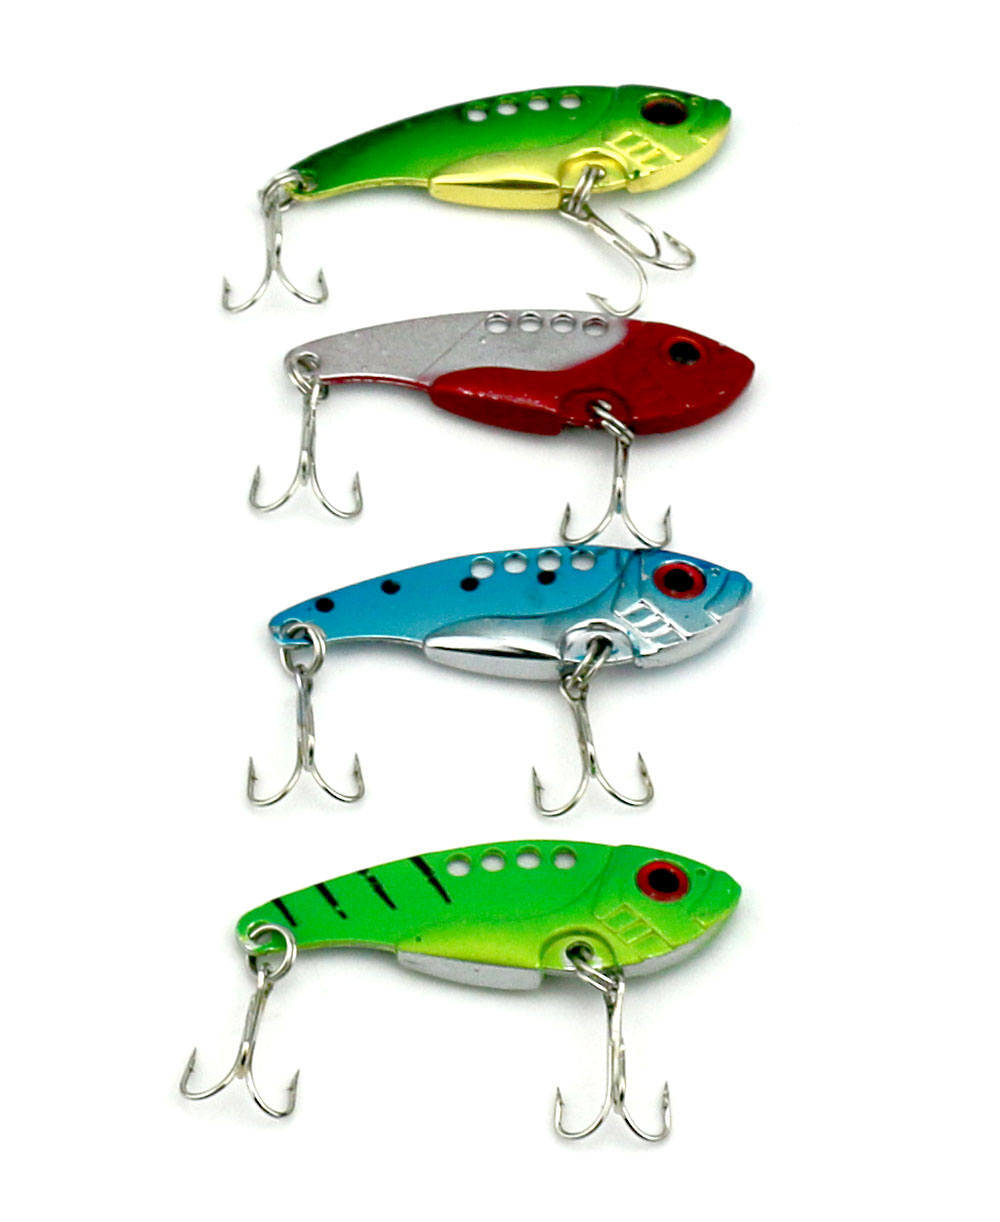 1PCS HENGJIA 5.5CM-11G Metal baits Fishing Lure VIB Bait pike pesca Fishing Tackle Multi Color Painted with Feather Barbed Hook fishing baits with hook color assorted 5 pack